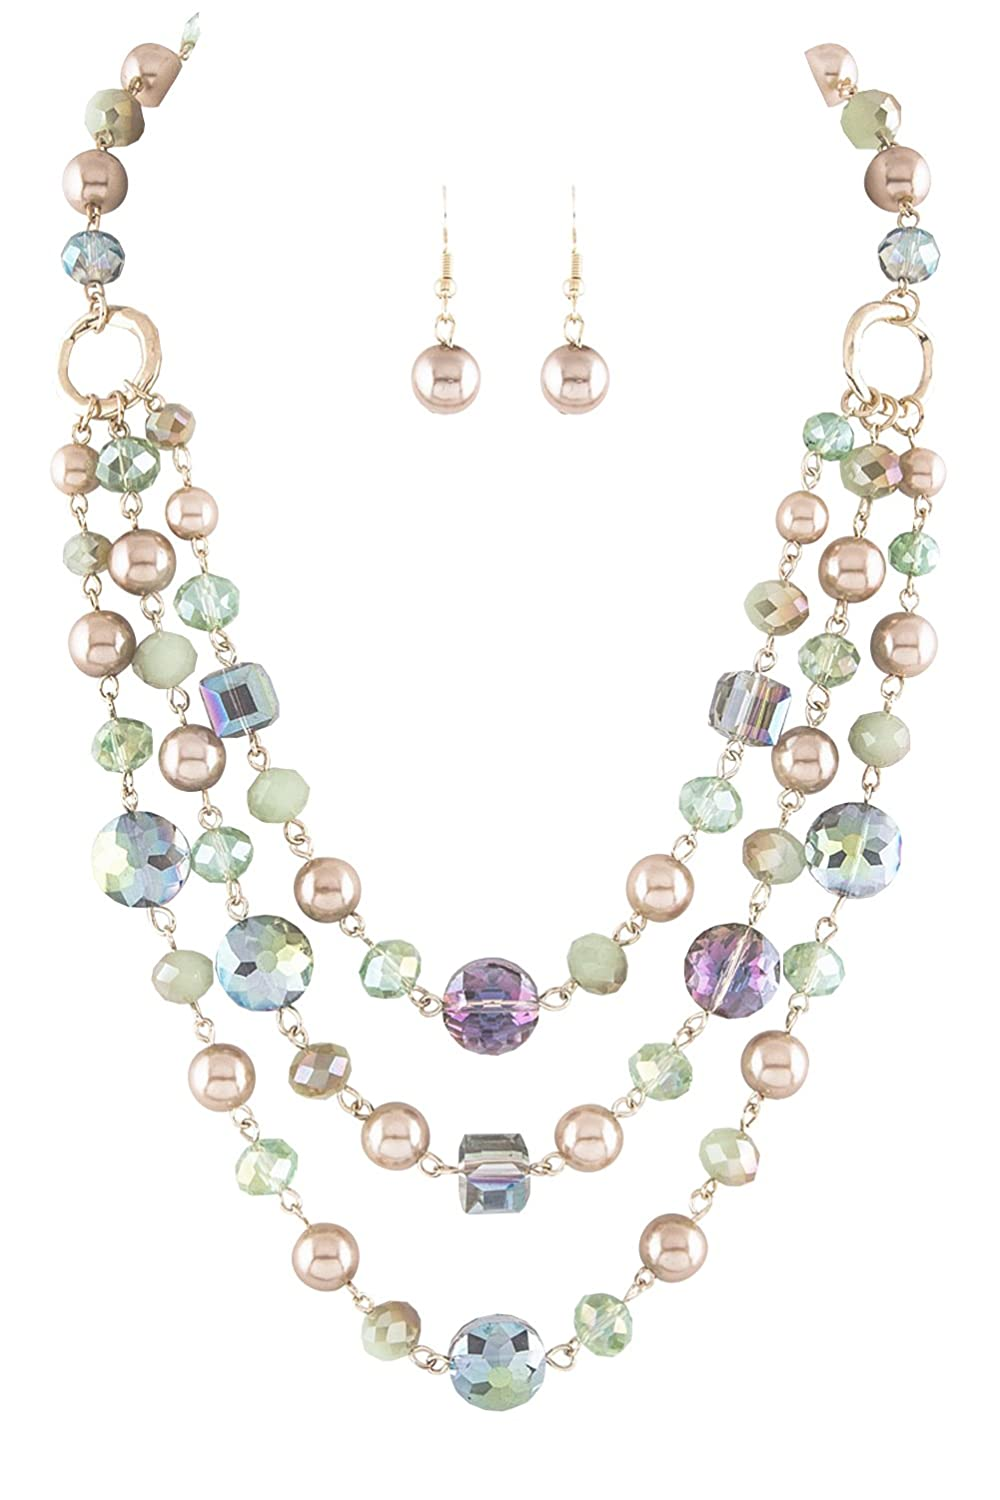 "Vintage Style Jewelry, Retro Jewelry Peachy-Beige Imitation-Pearl Transparent Blue Green & Blue Aurora Borealis Bead Layered Bib Necklace 18"" $24.99 AT vintagedancer.com"